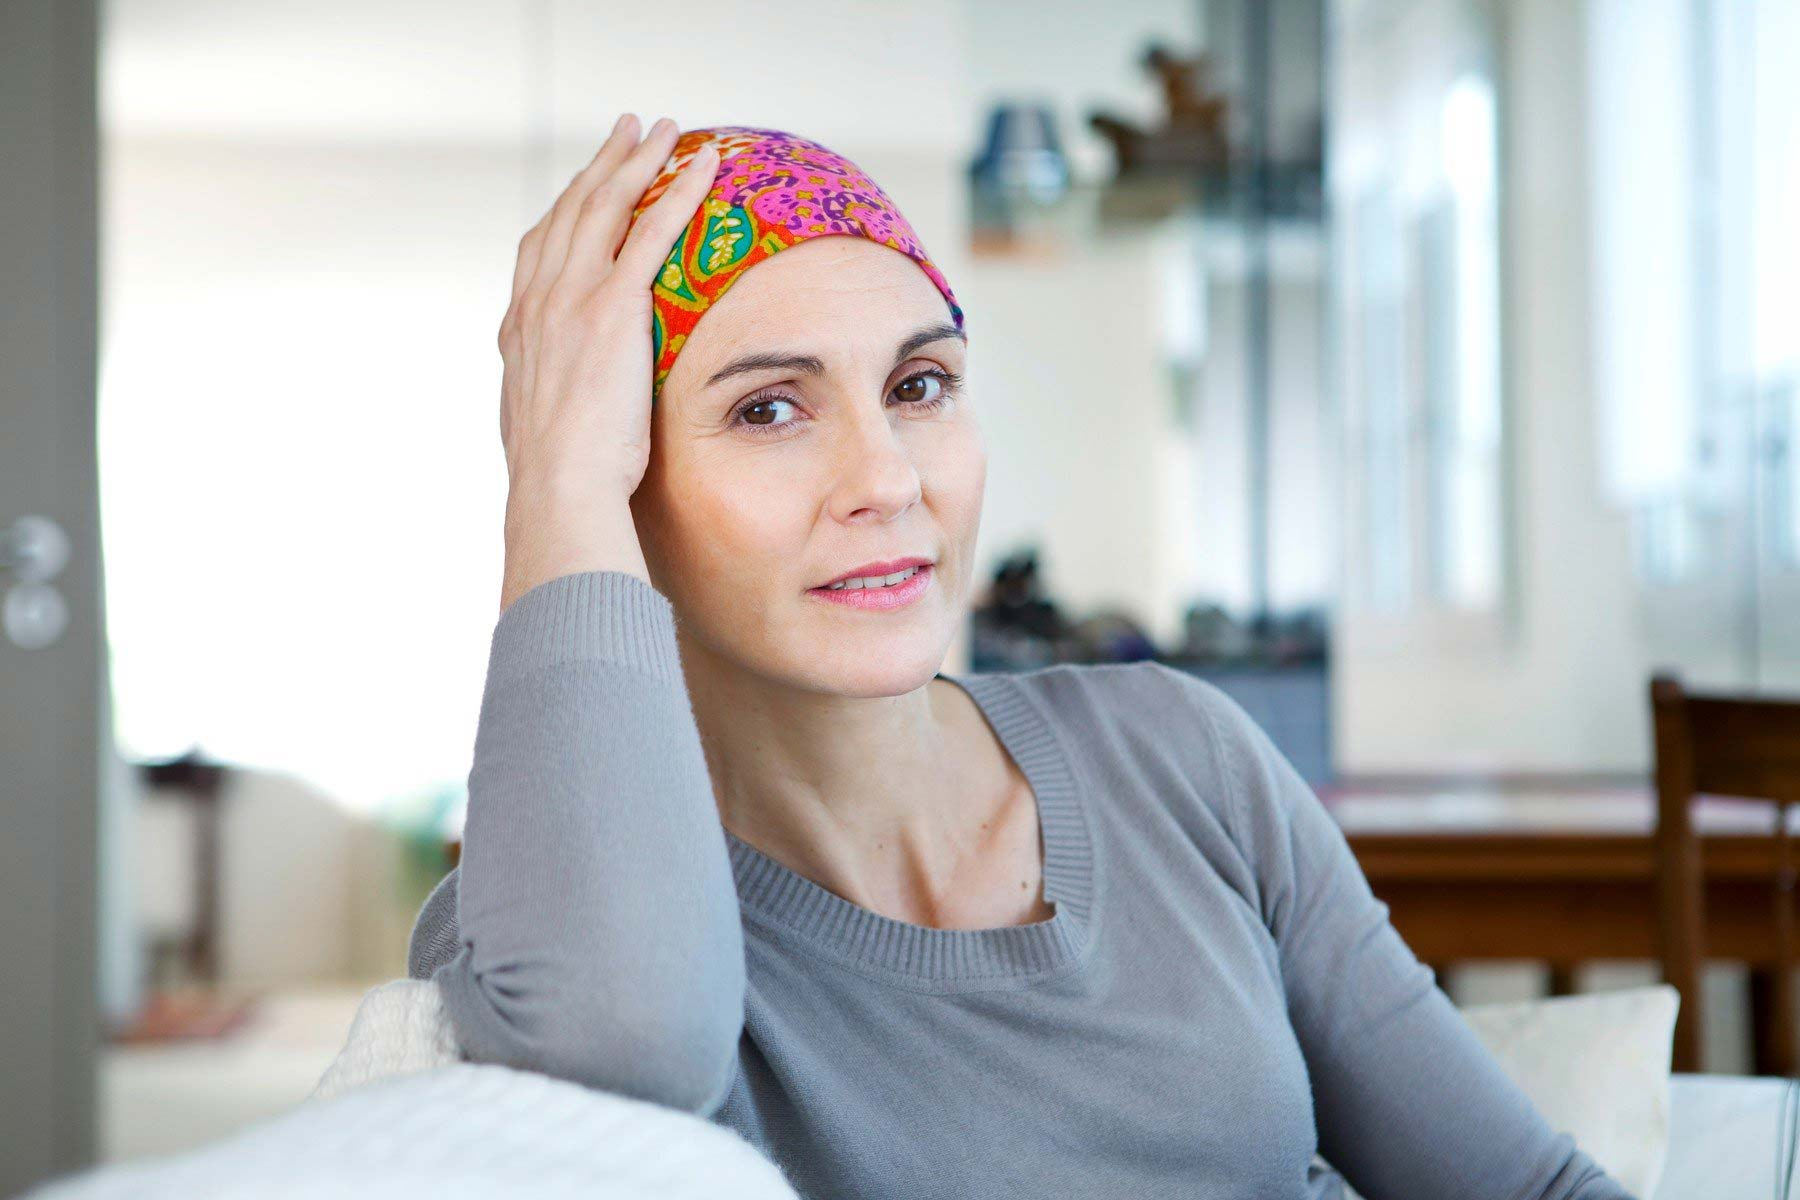 Cancer Center - woman holding her hand on head with scarf